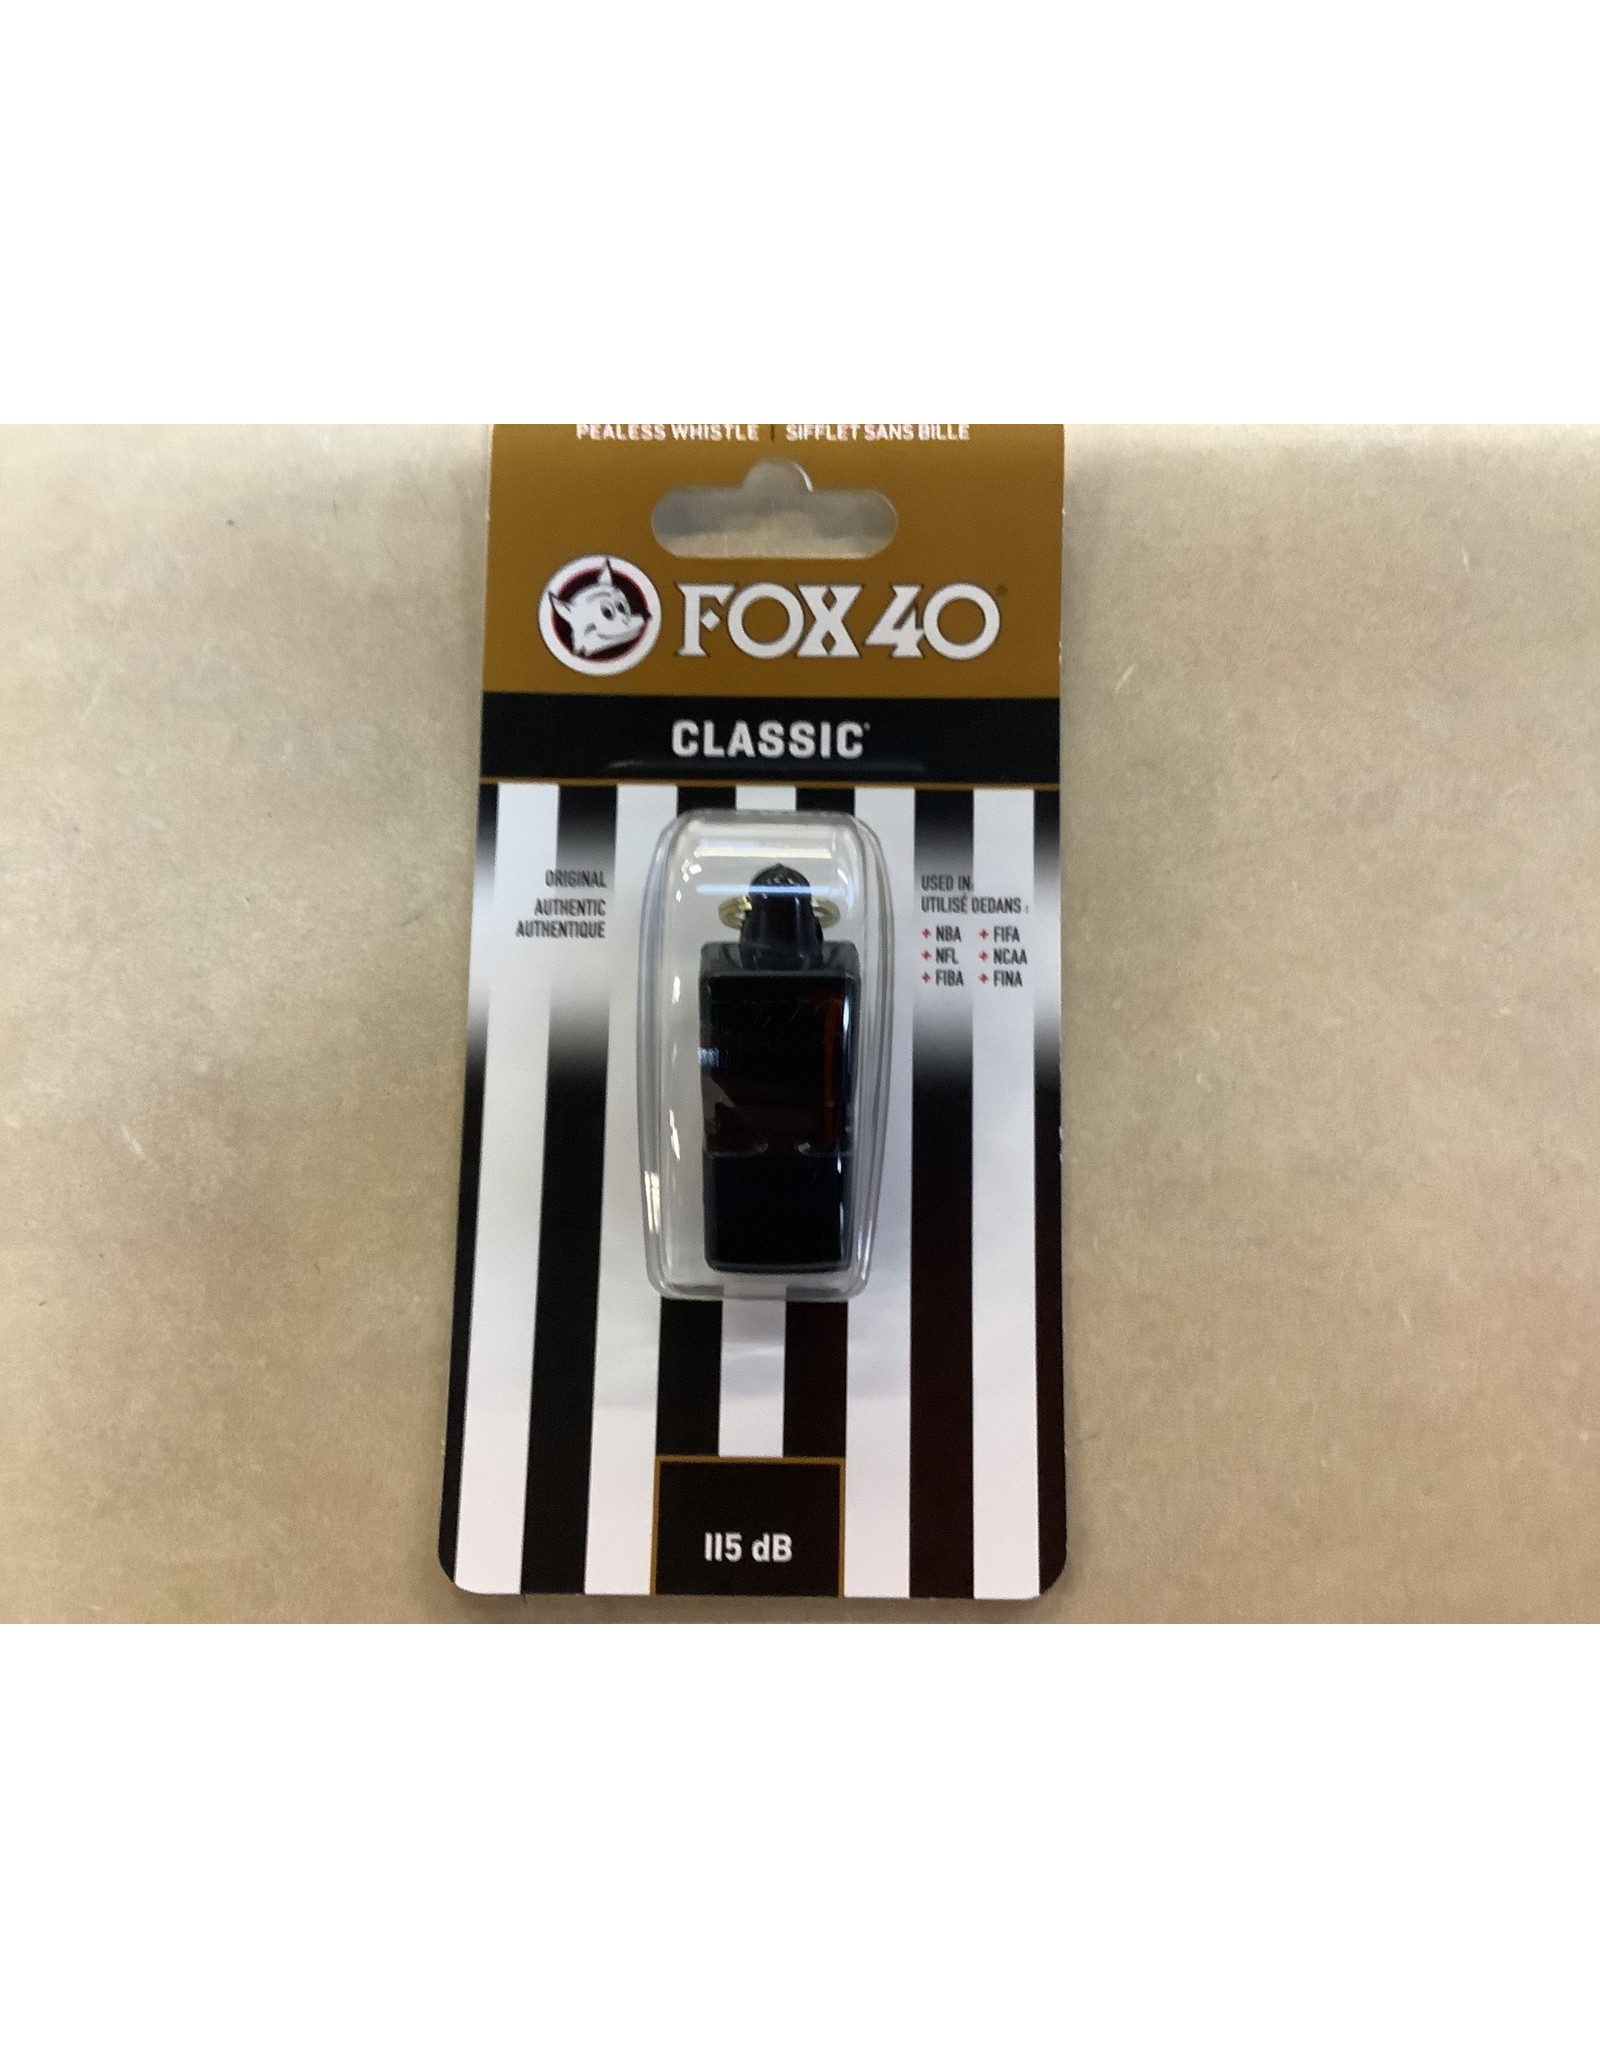 Fox 40 Fox 40 Classic Official WhistlePlastic